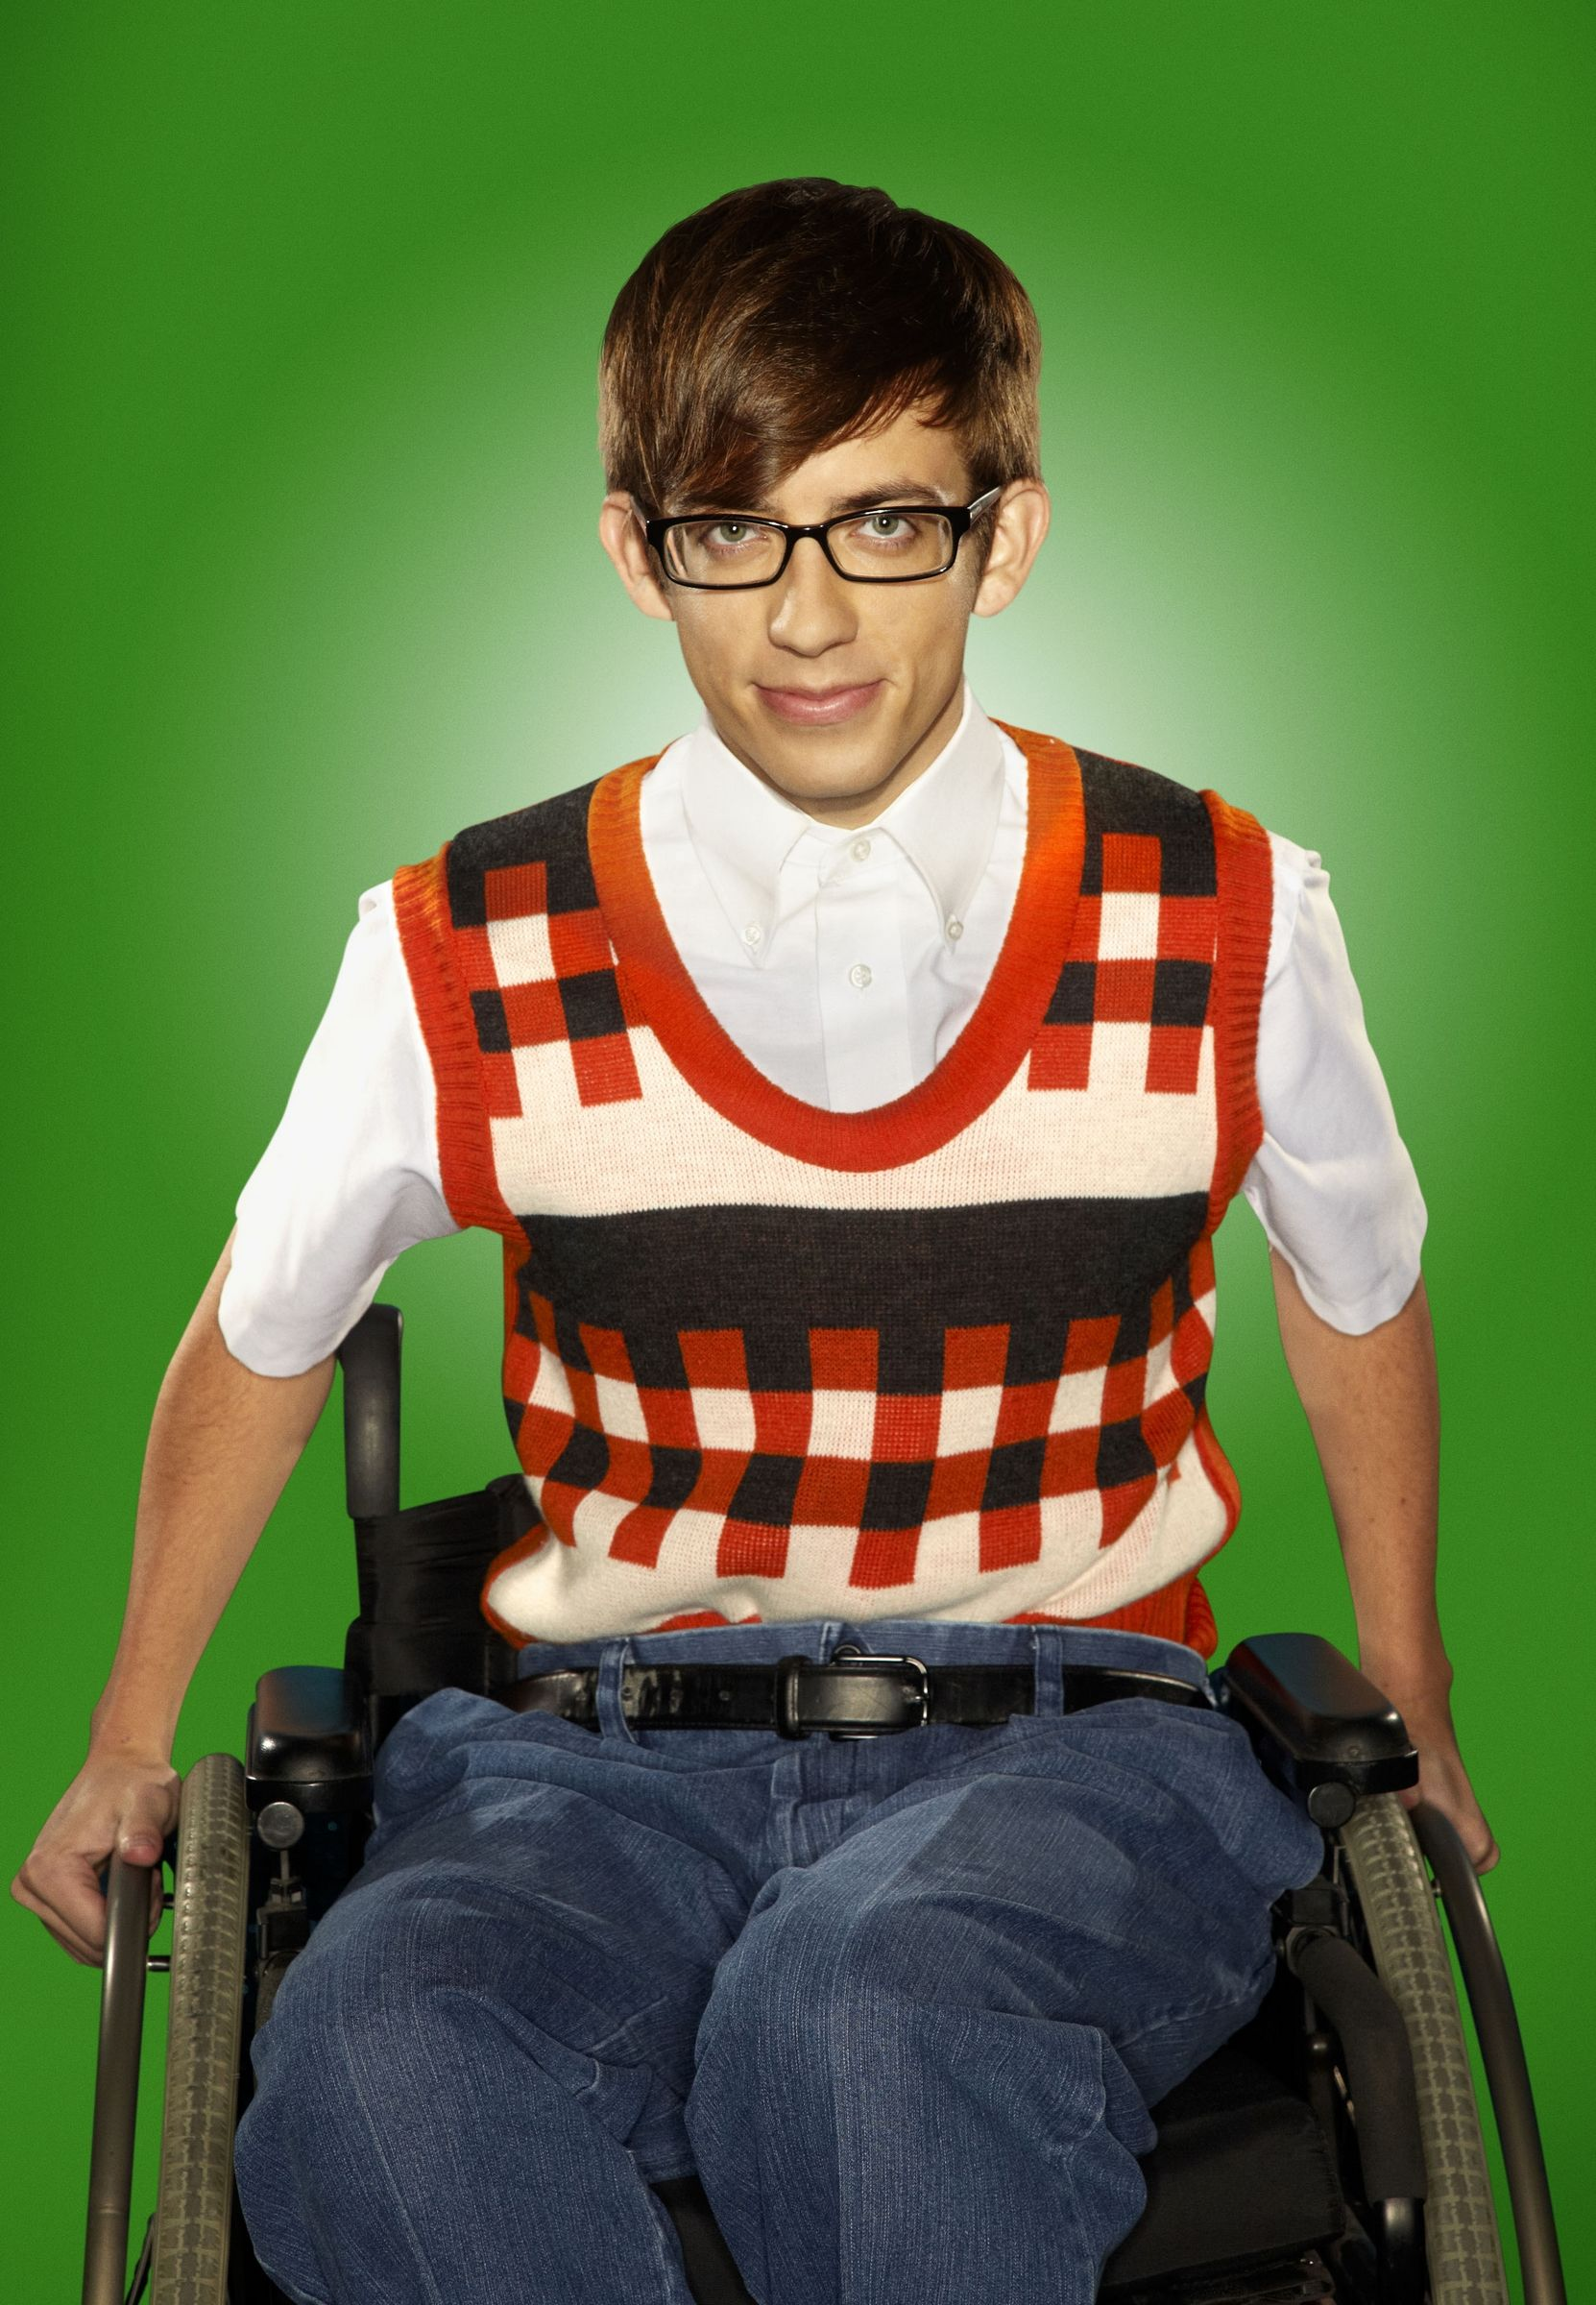 Wheelchair Glee How To Make A Giant Bean Bag Chair Kevin Mchale As Artie Abrams In Season 2